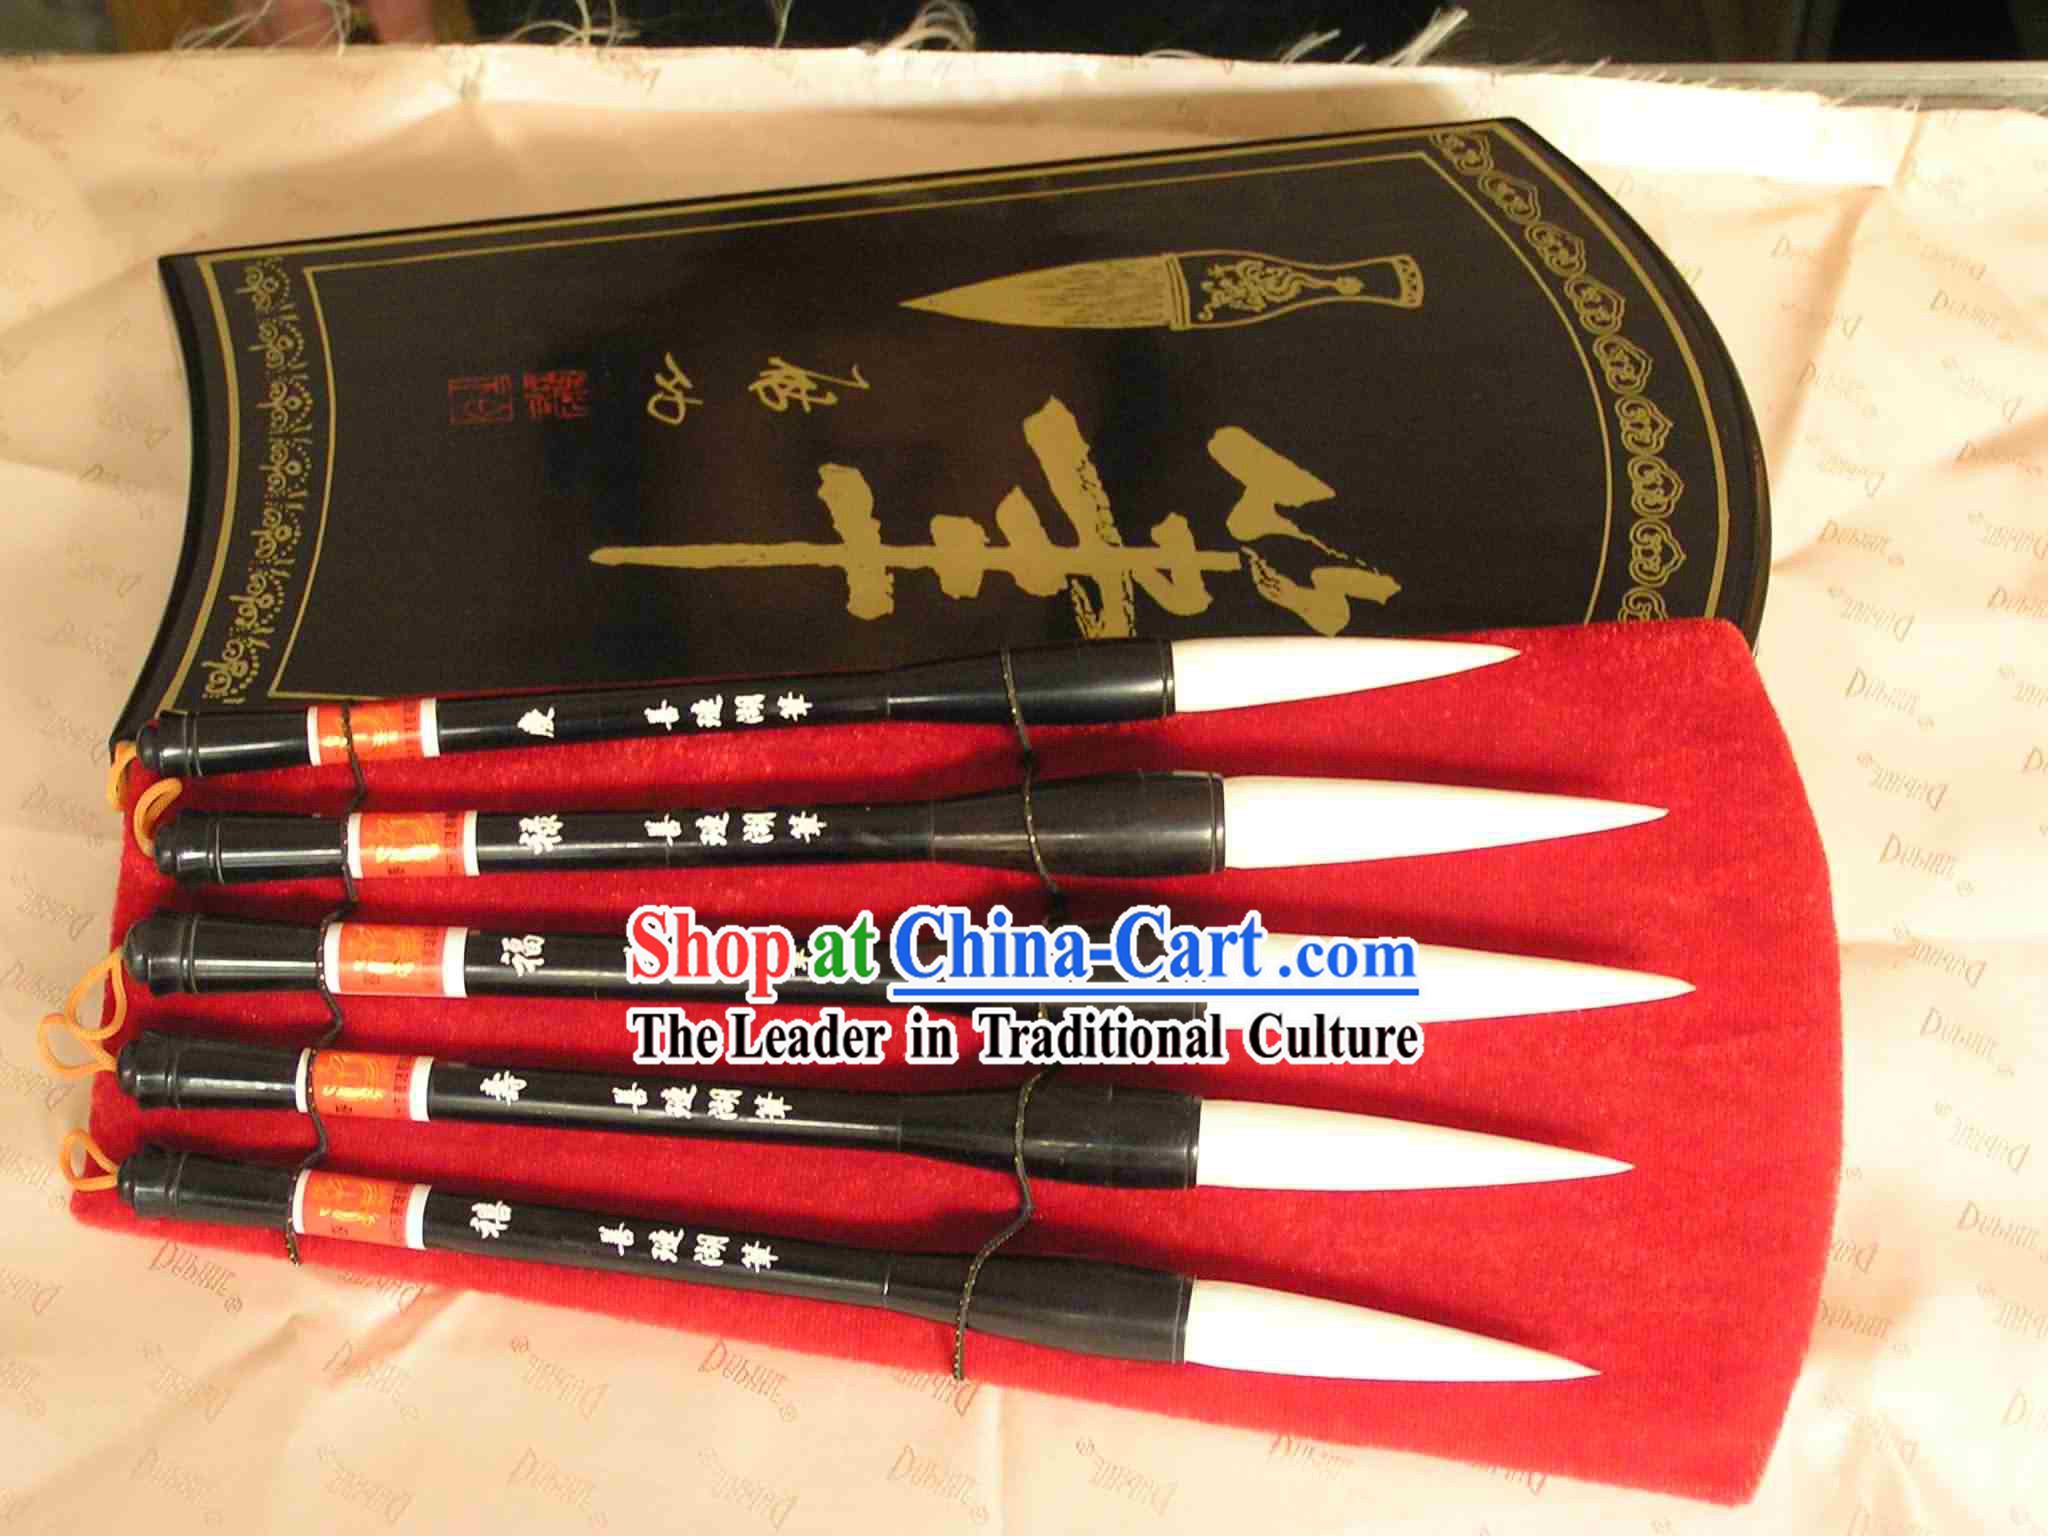 Chinese Hand Made Classic Lake Brush Set